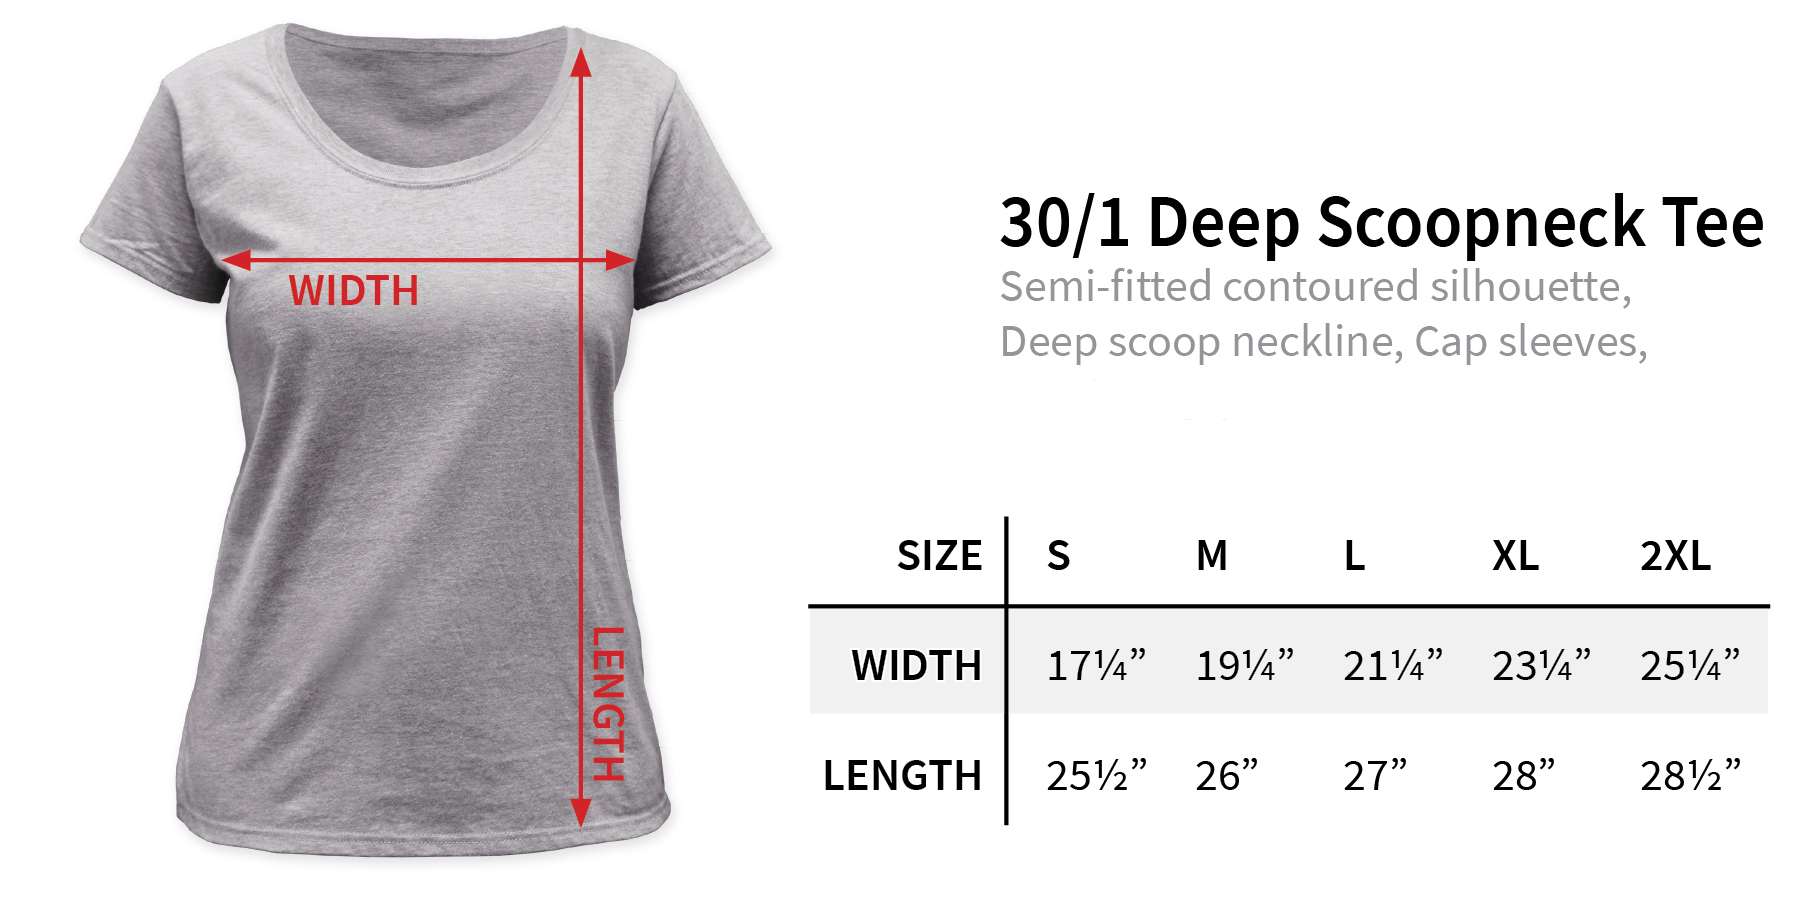 Size chart for Bambi Women's Scoopneck T-Shirt